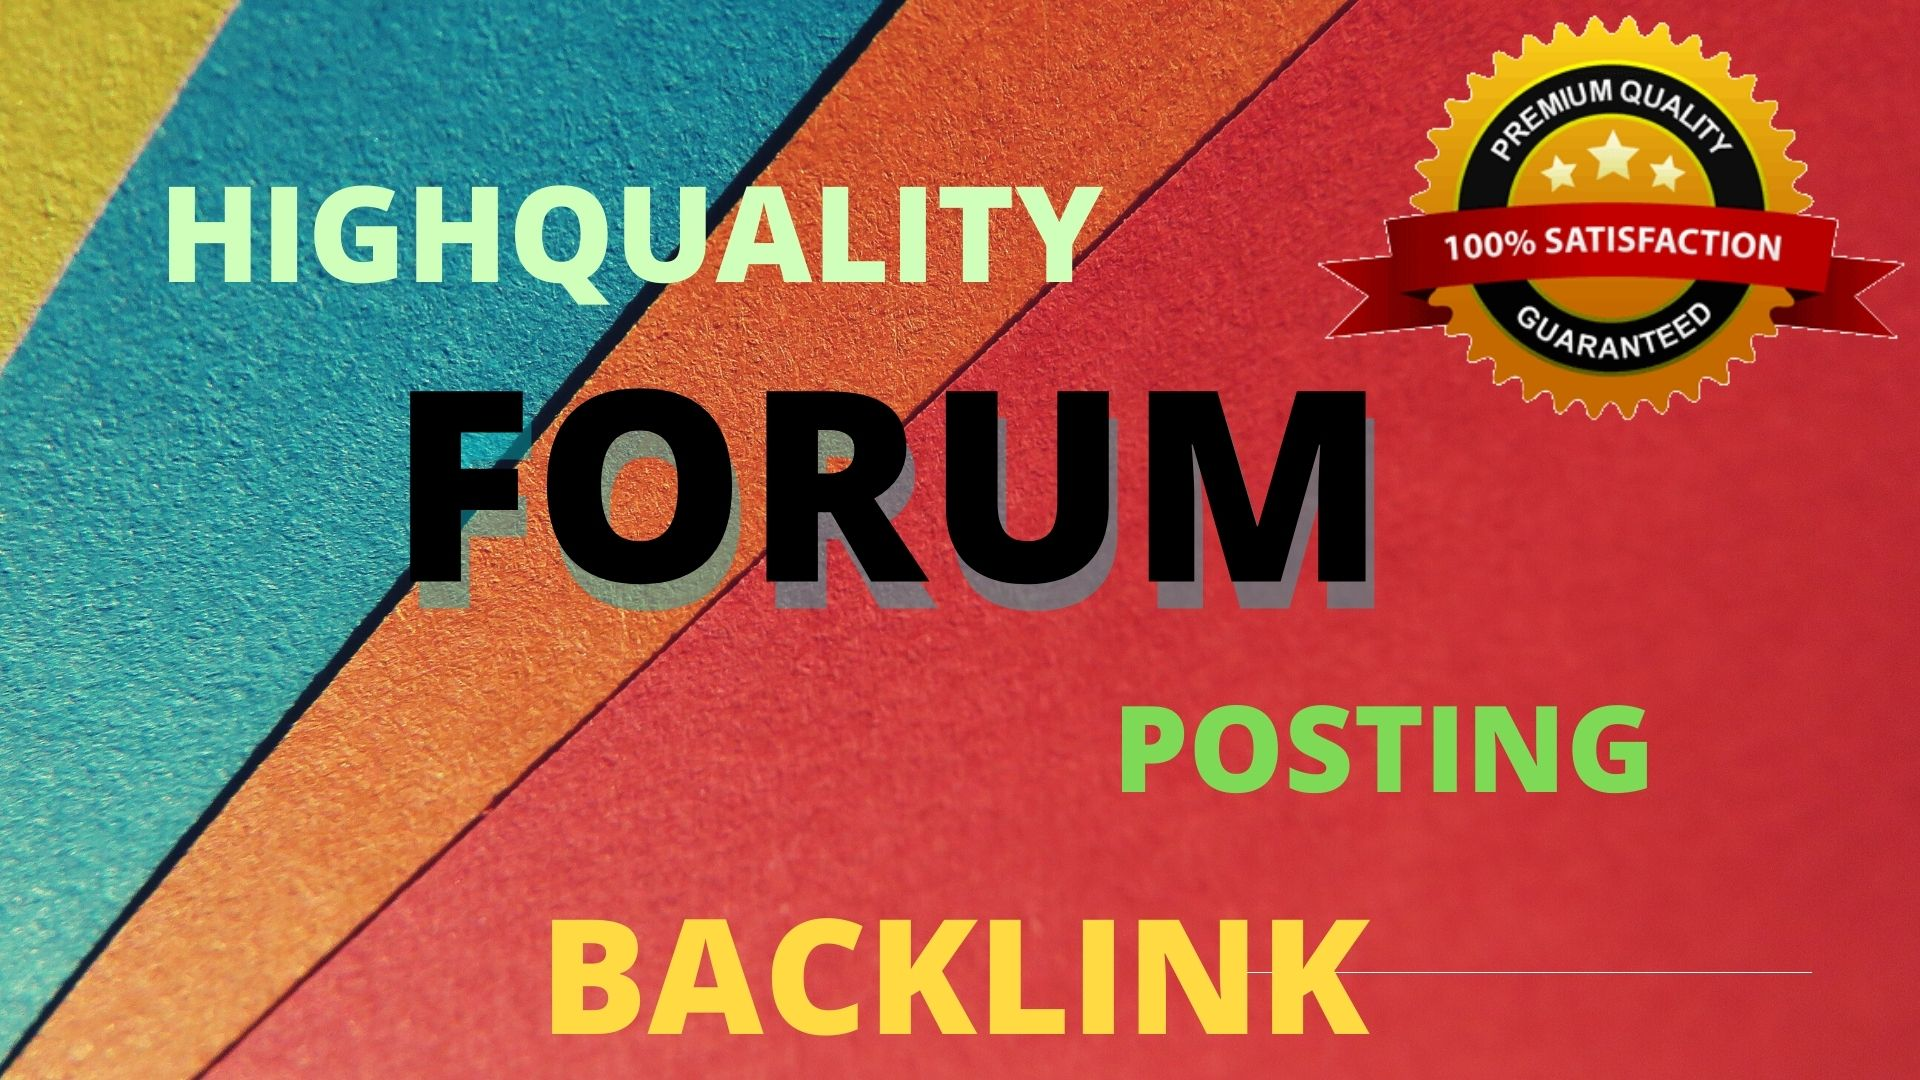 I will submit 15 forum posting.